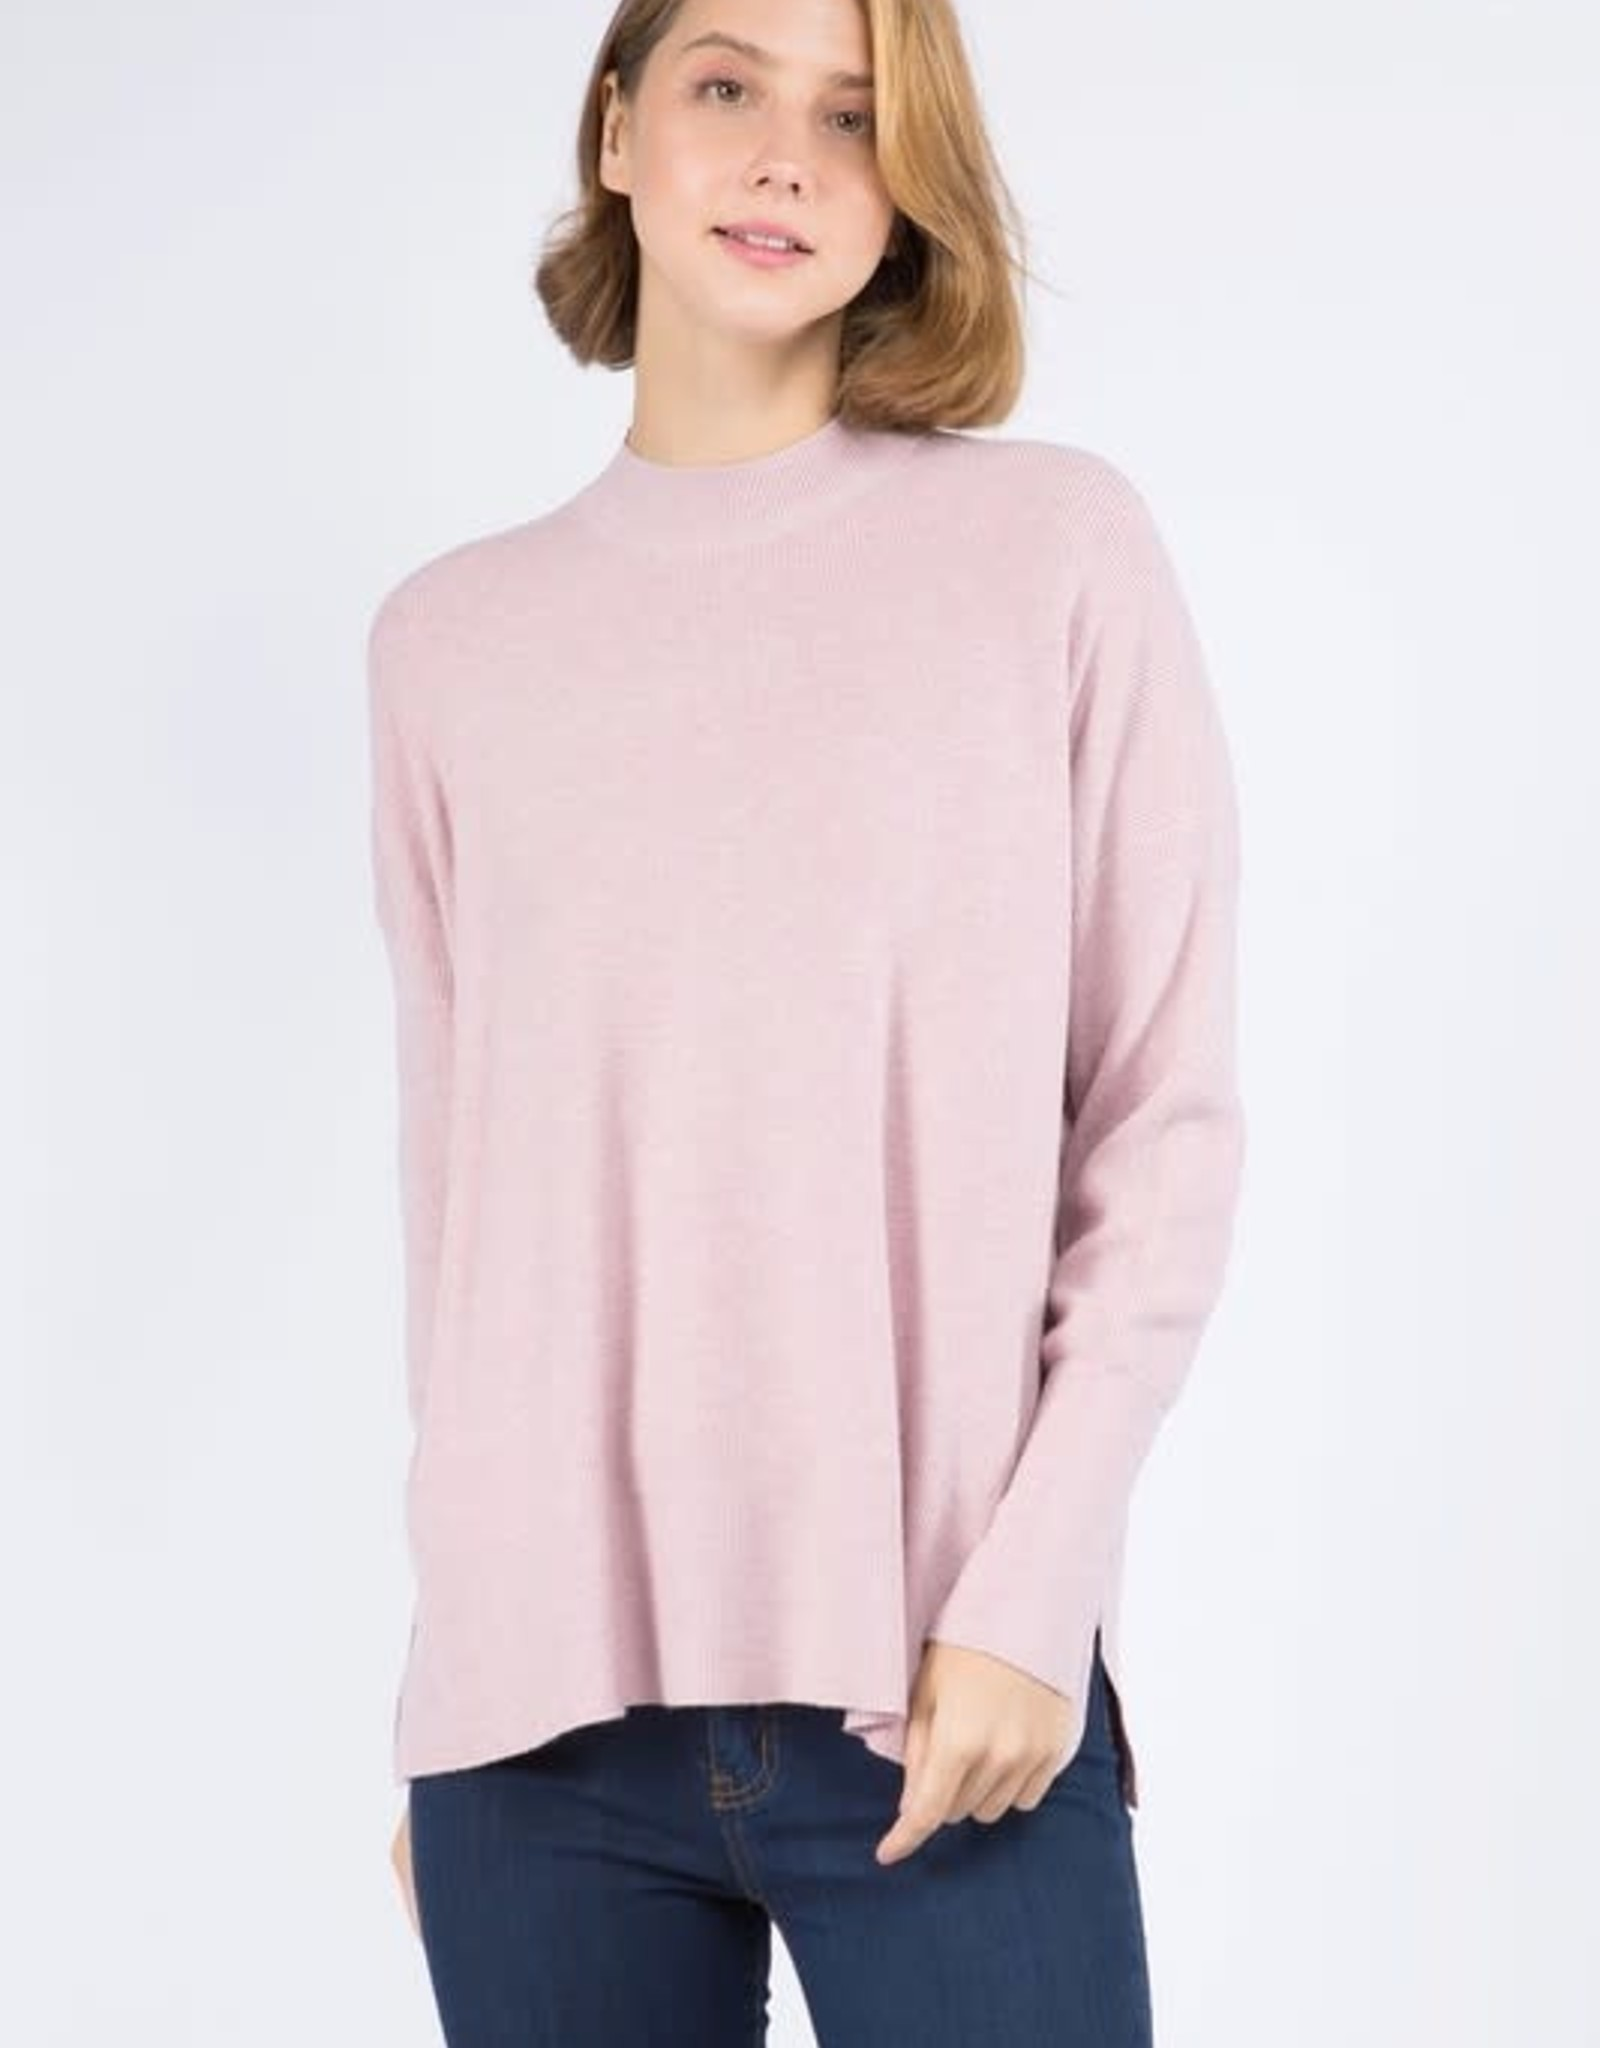 Miss Bliss Mockneck Pullover Sweater- H.Peony